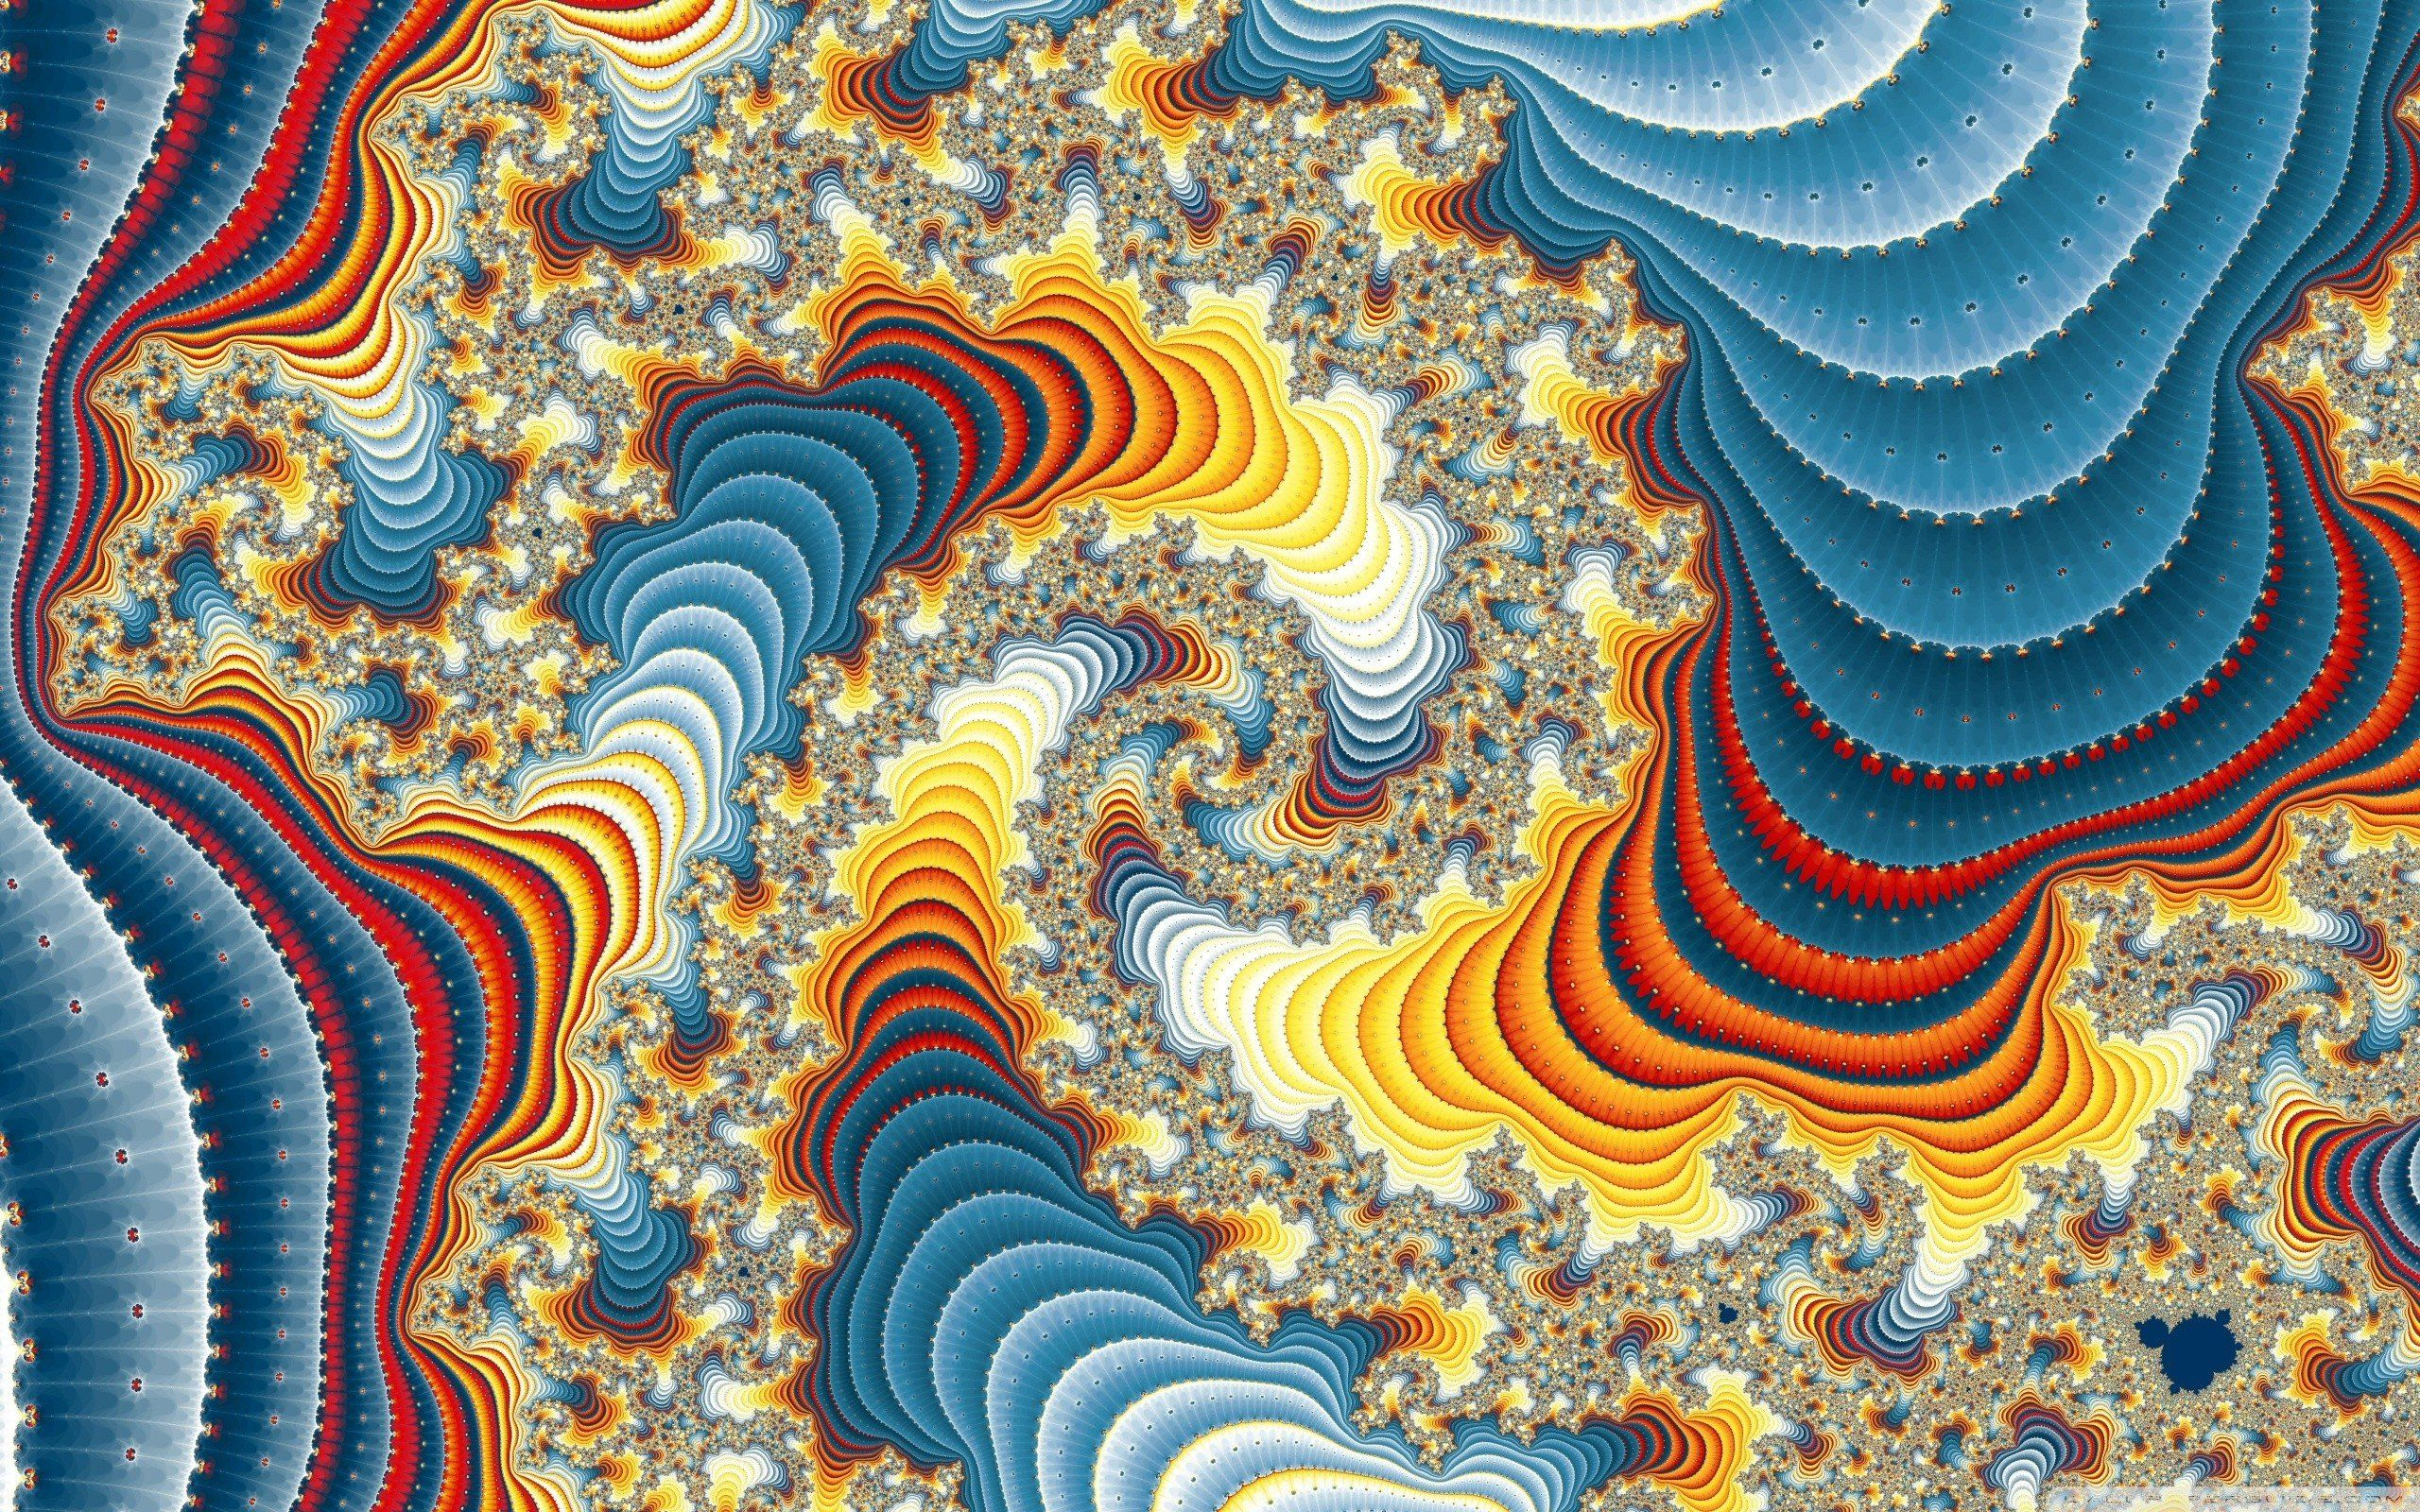 Pin on Fractals 2560x1600